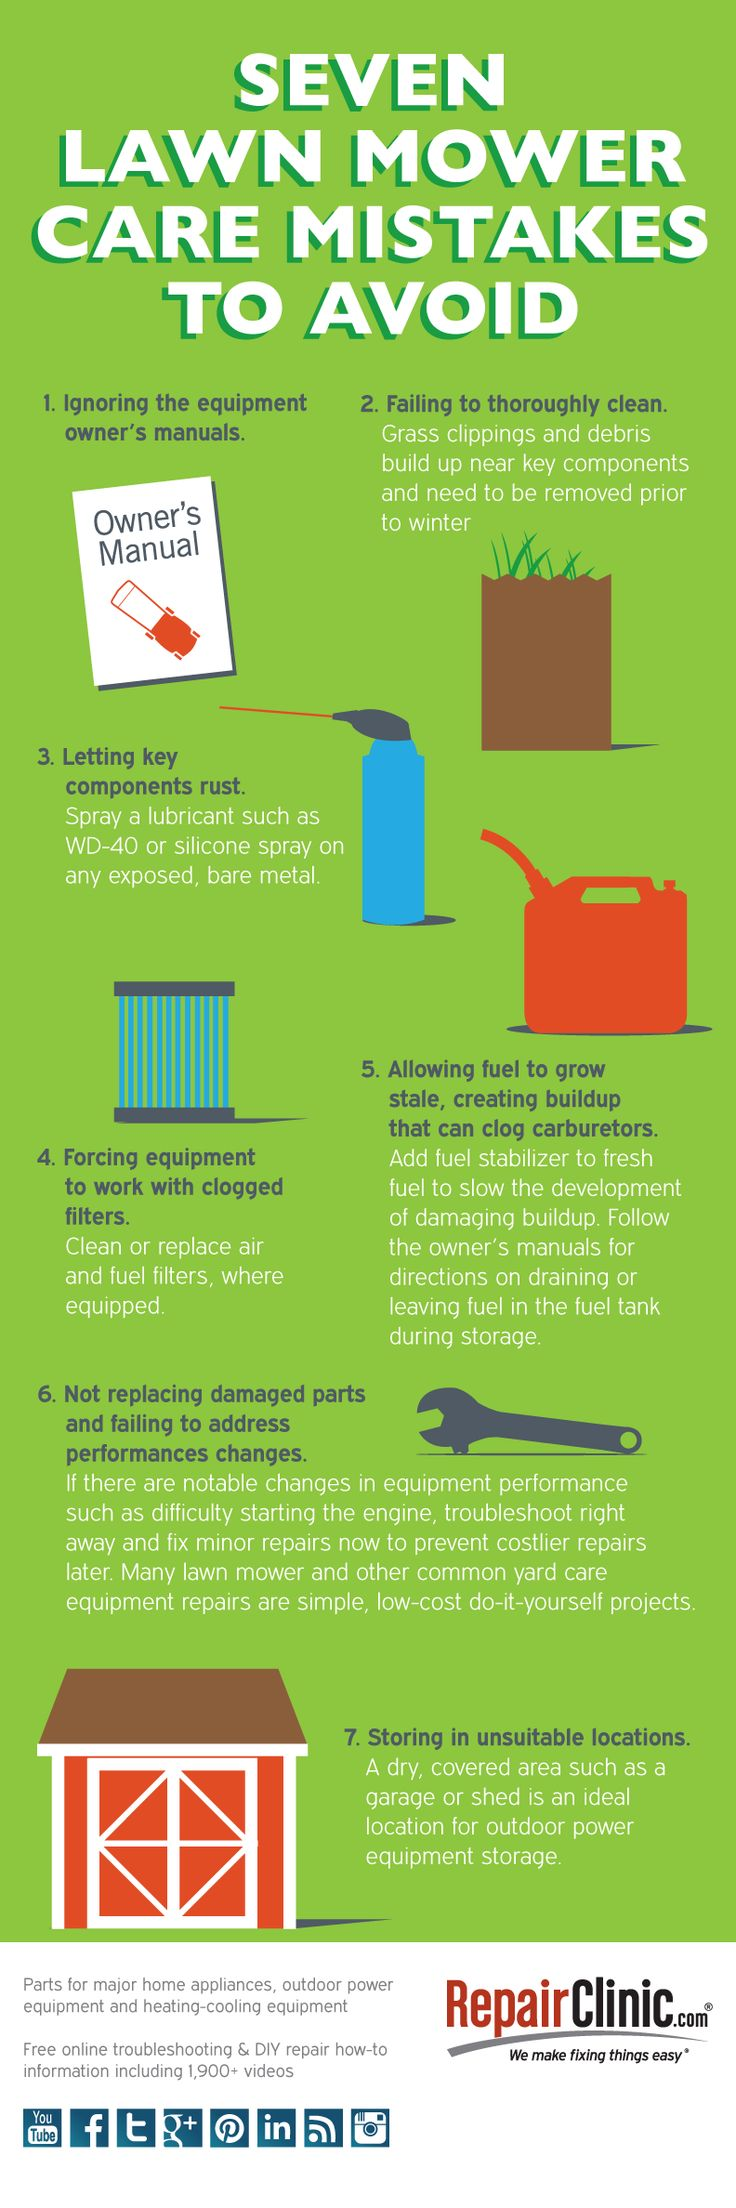 #Infographic - 7 lawnmower care mistakes that can kill your lawn mower and outdoor power equipment. #lawncare #lawnmower More at http://DIY.RepairClinic.com